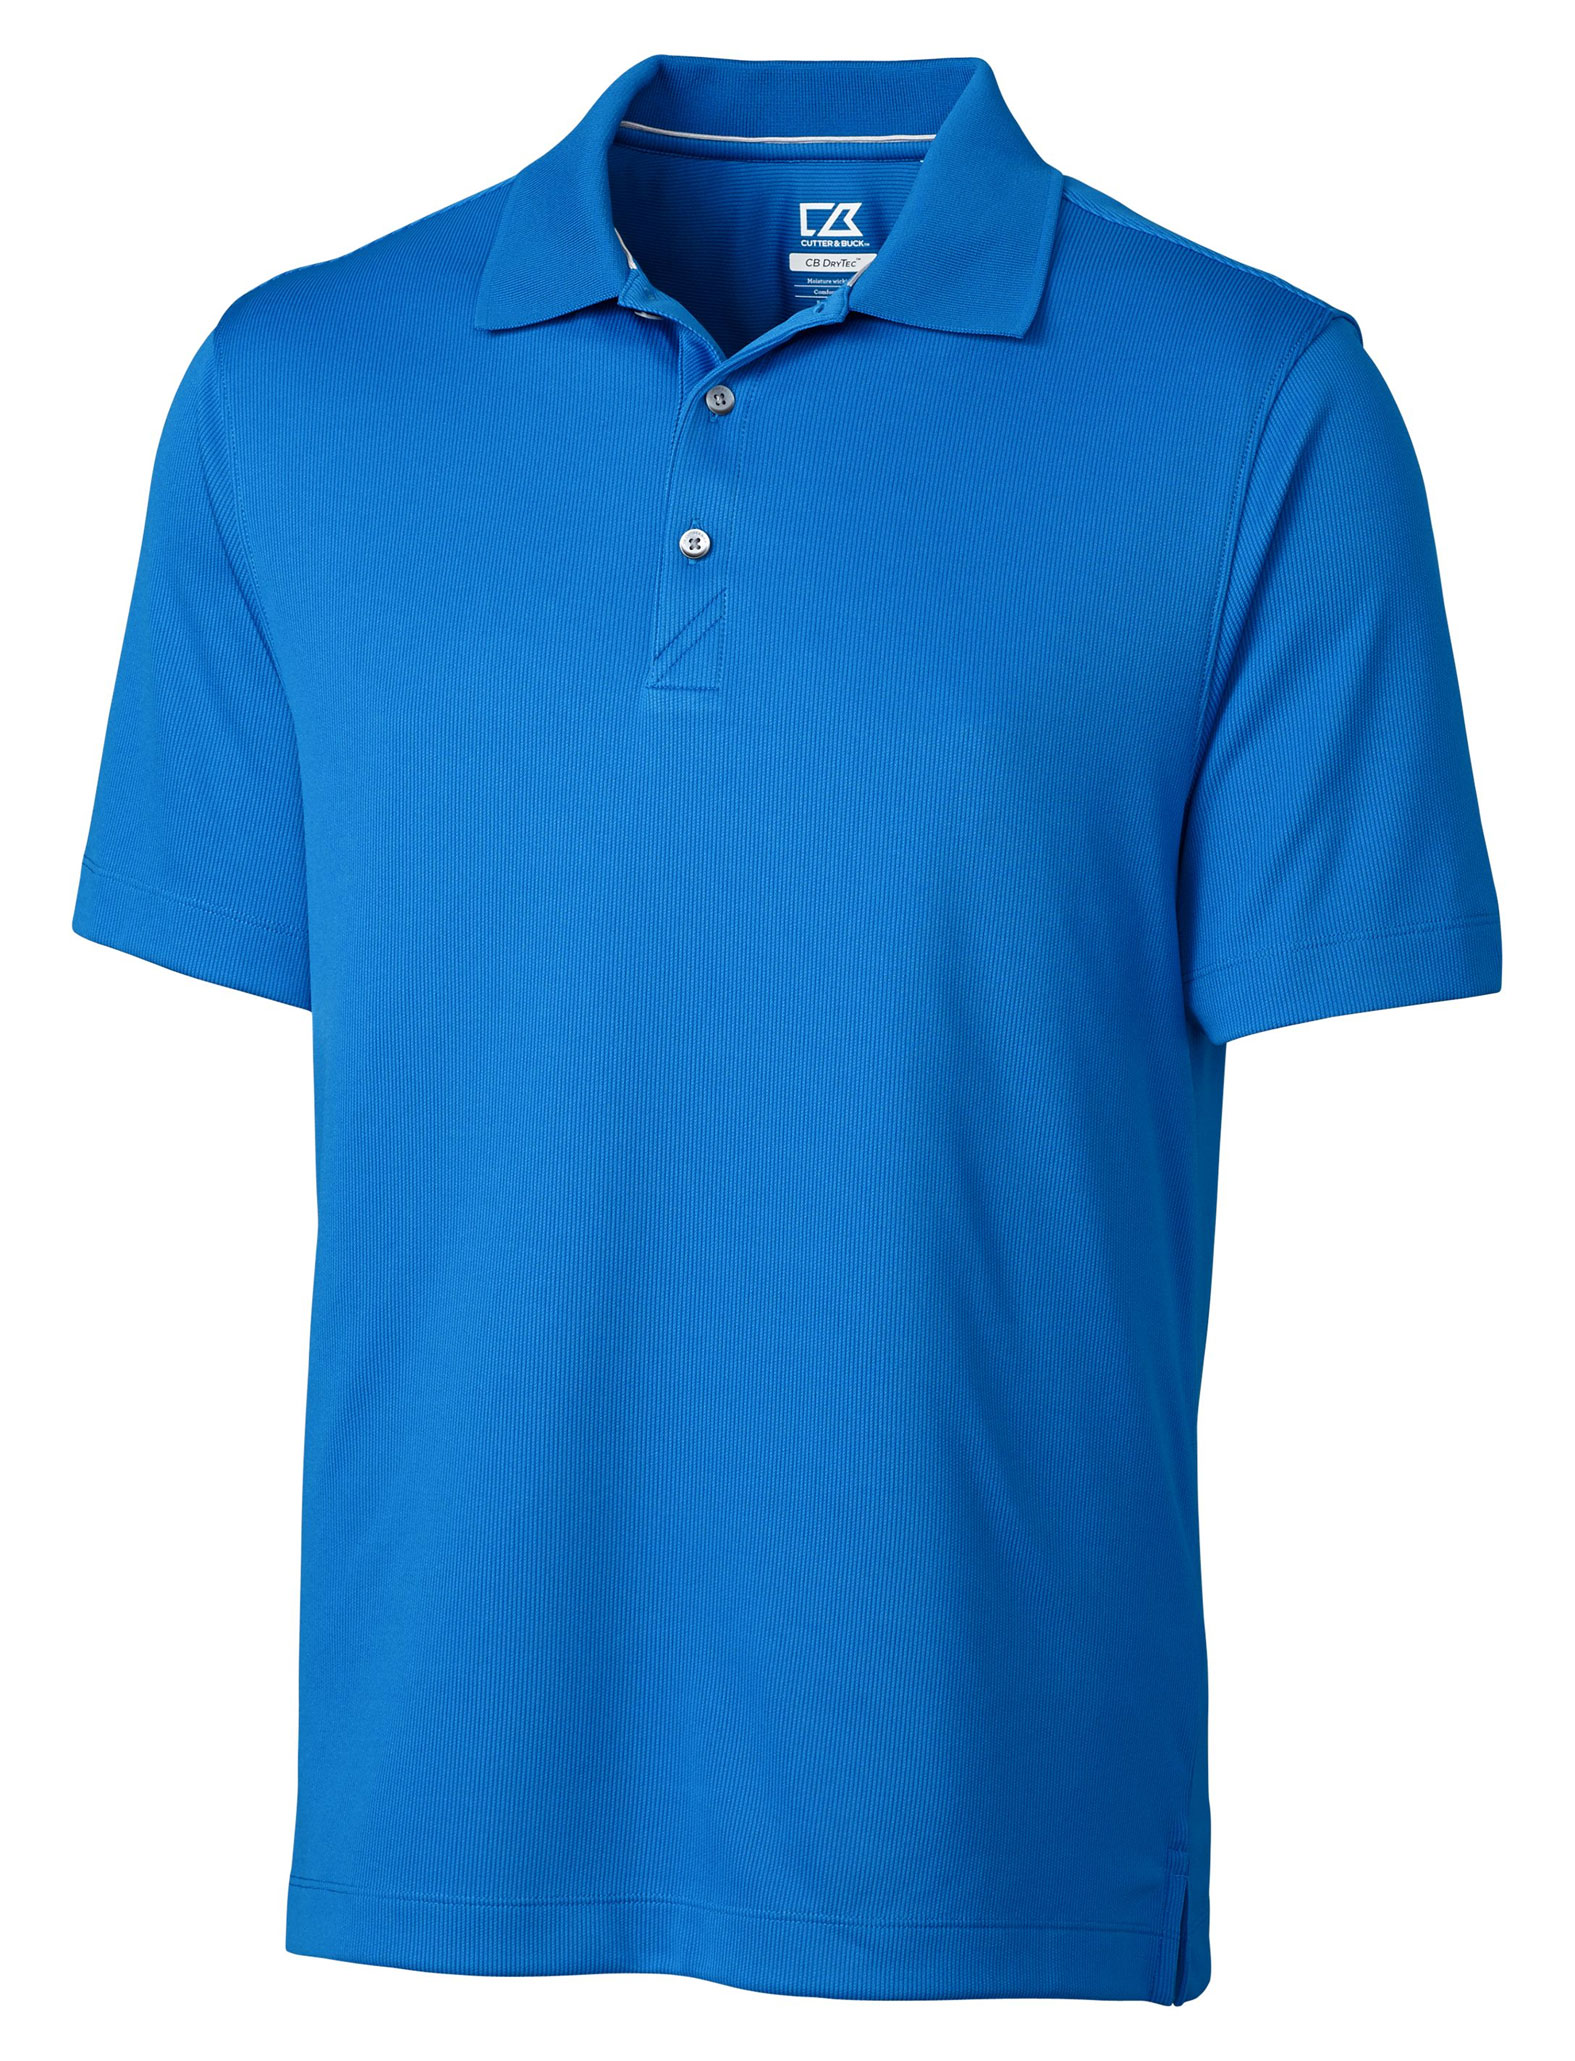 Mens CB DryTec� Glendale Polo in  Big & Tall Sizes